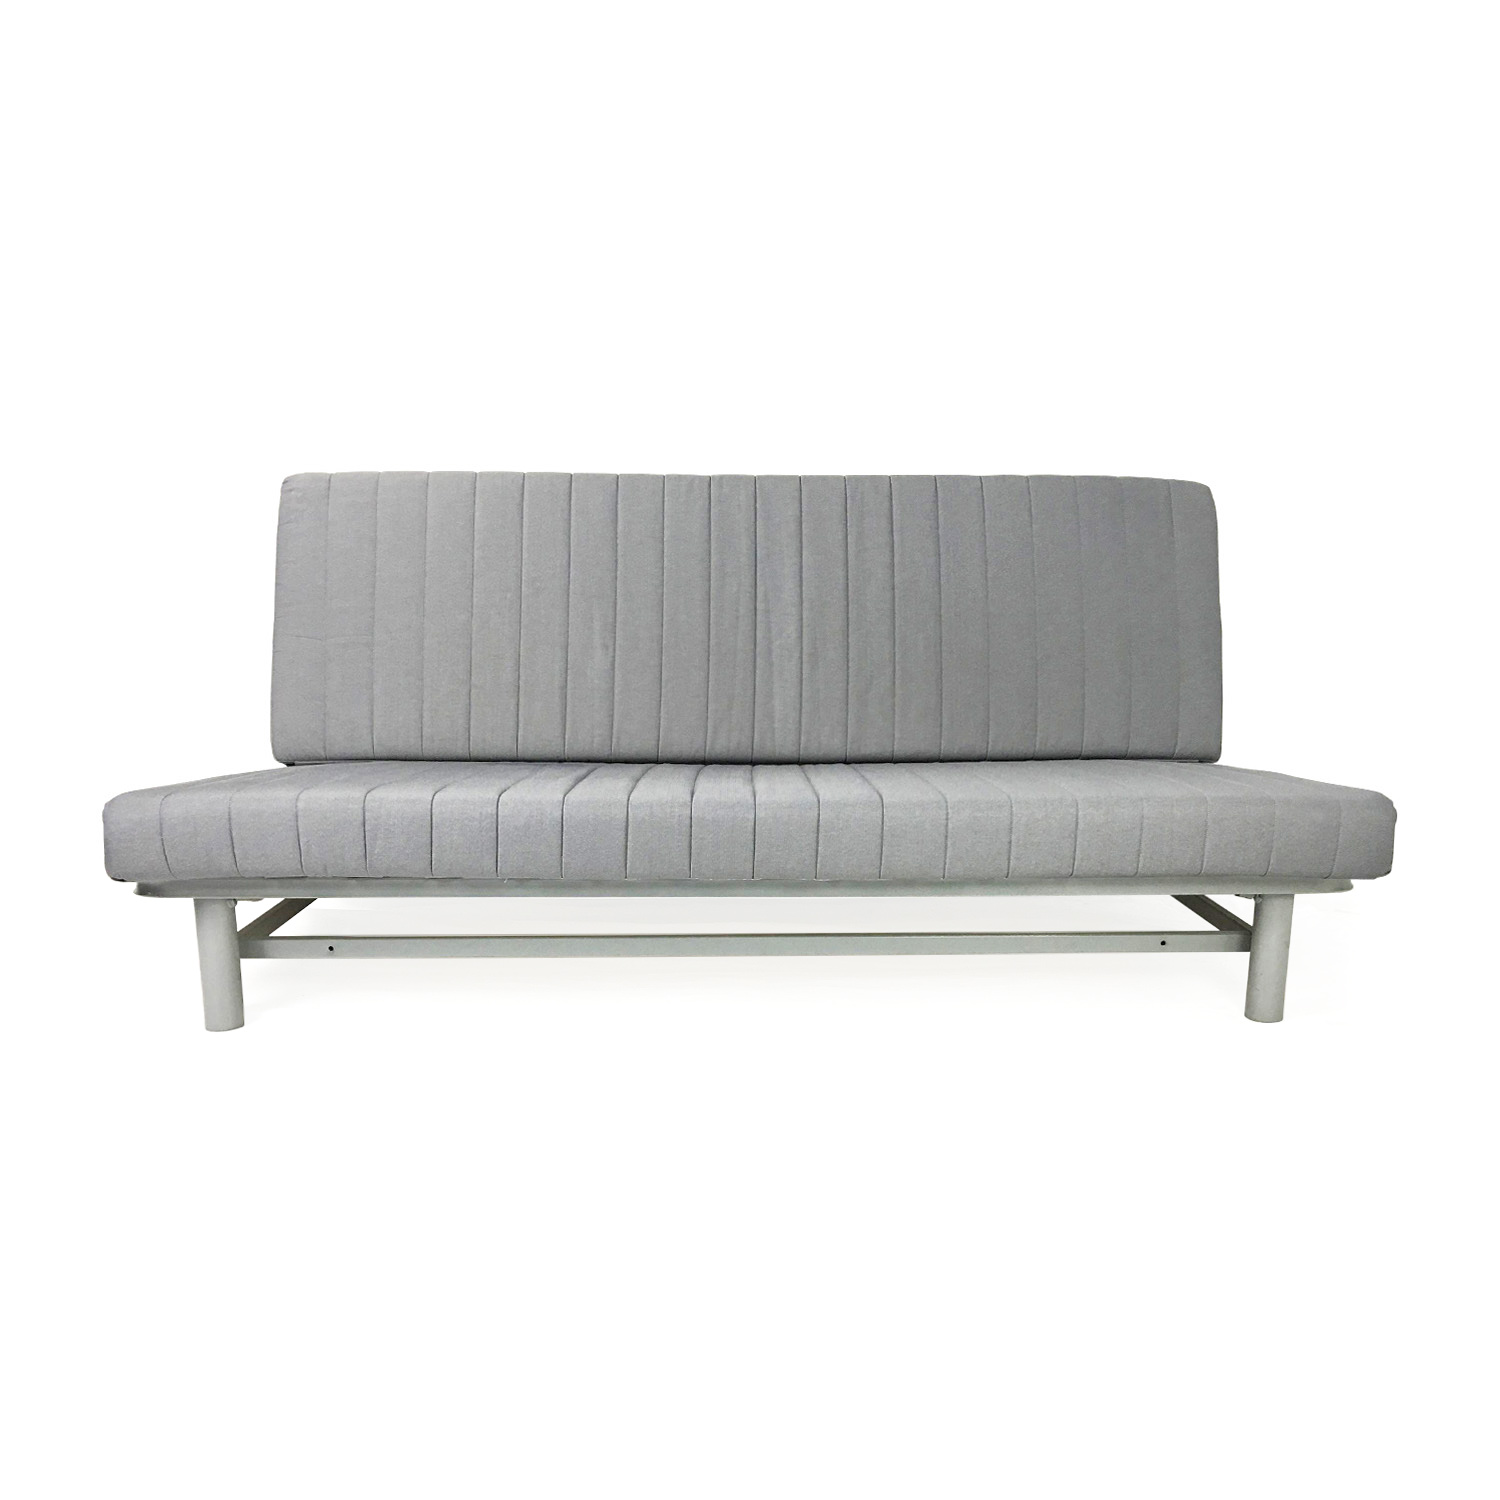 Ikea bed sofas backabro sofa bed with chaise longue ramna for Ikea gray sofa